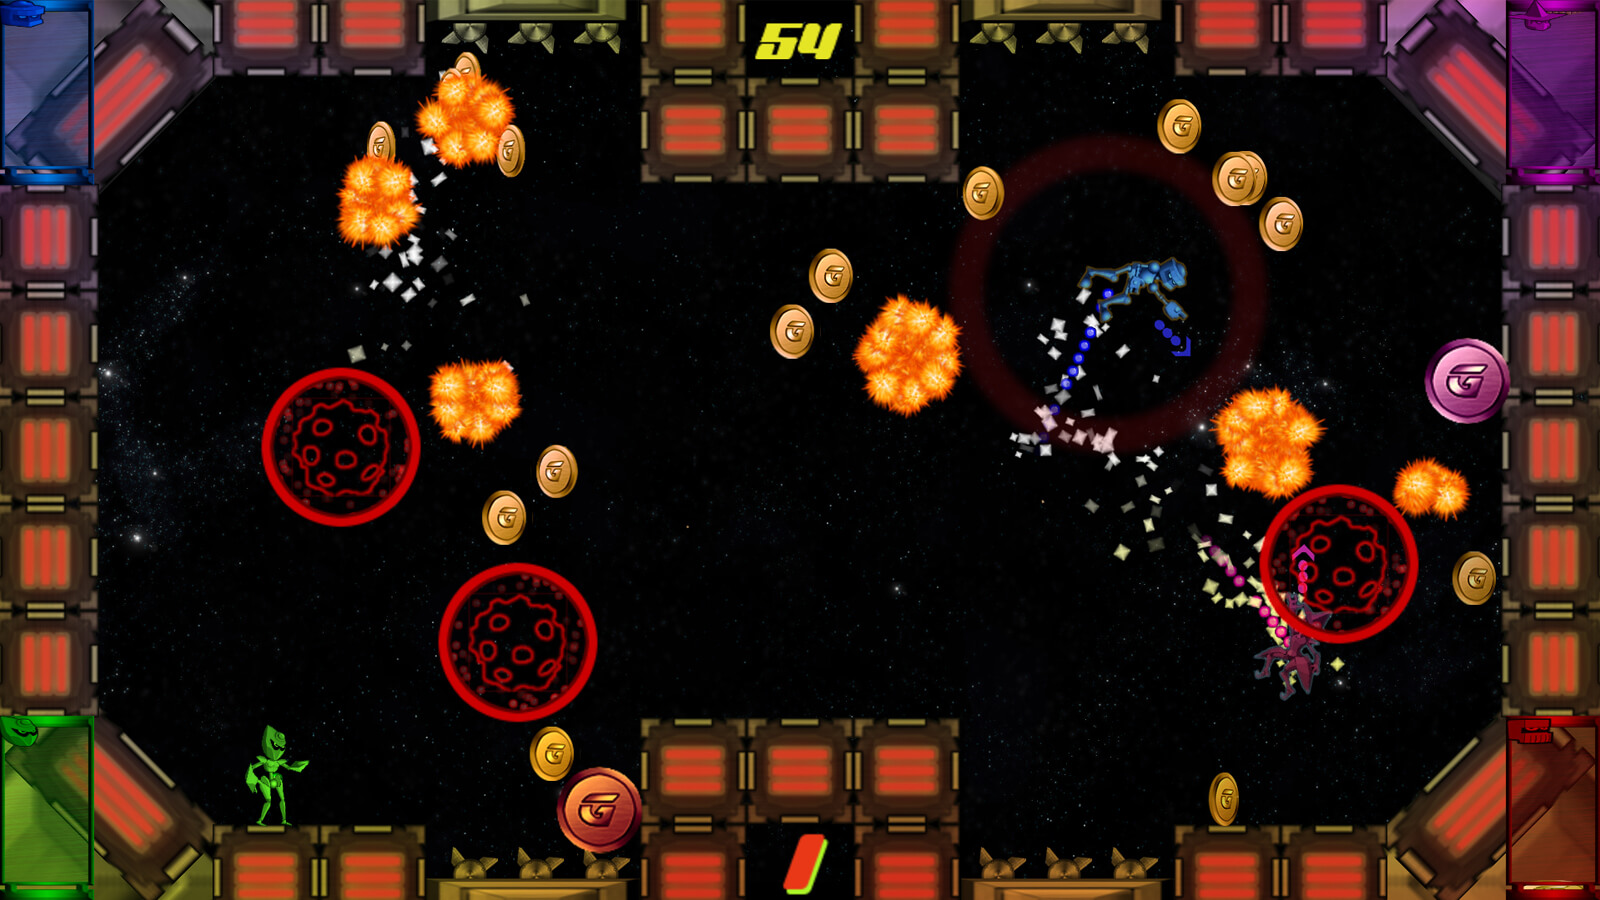 A green, blue, and pink robot duke it out in the arena, while explosions, coins and asteroids litter the screen.